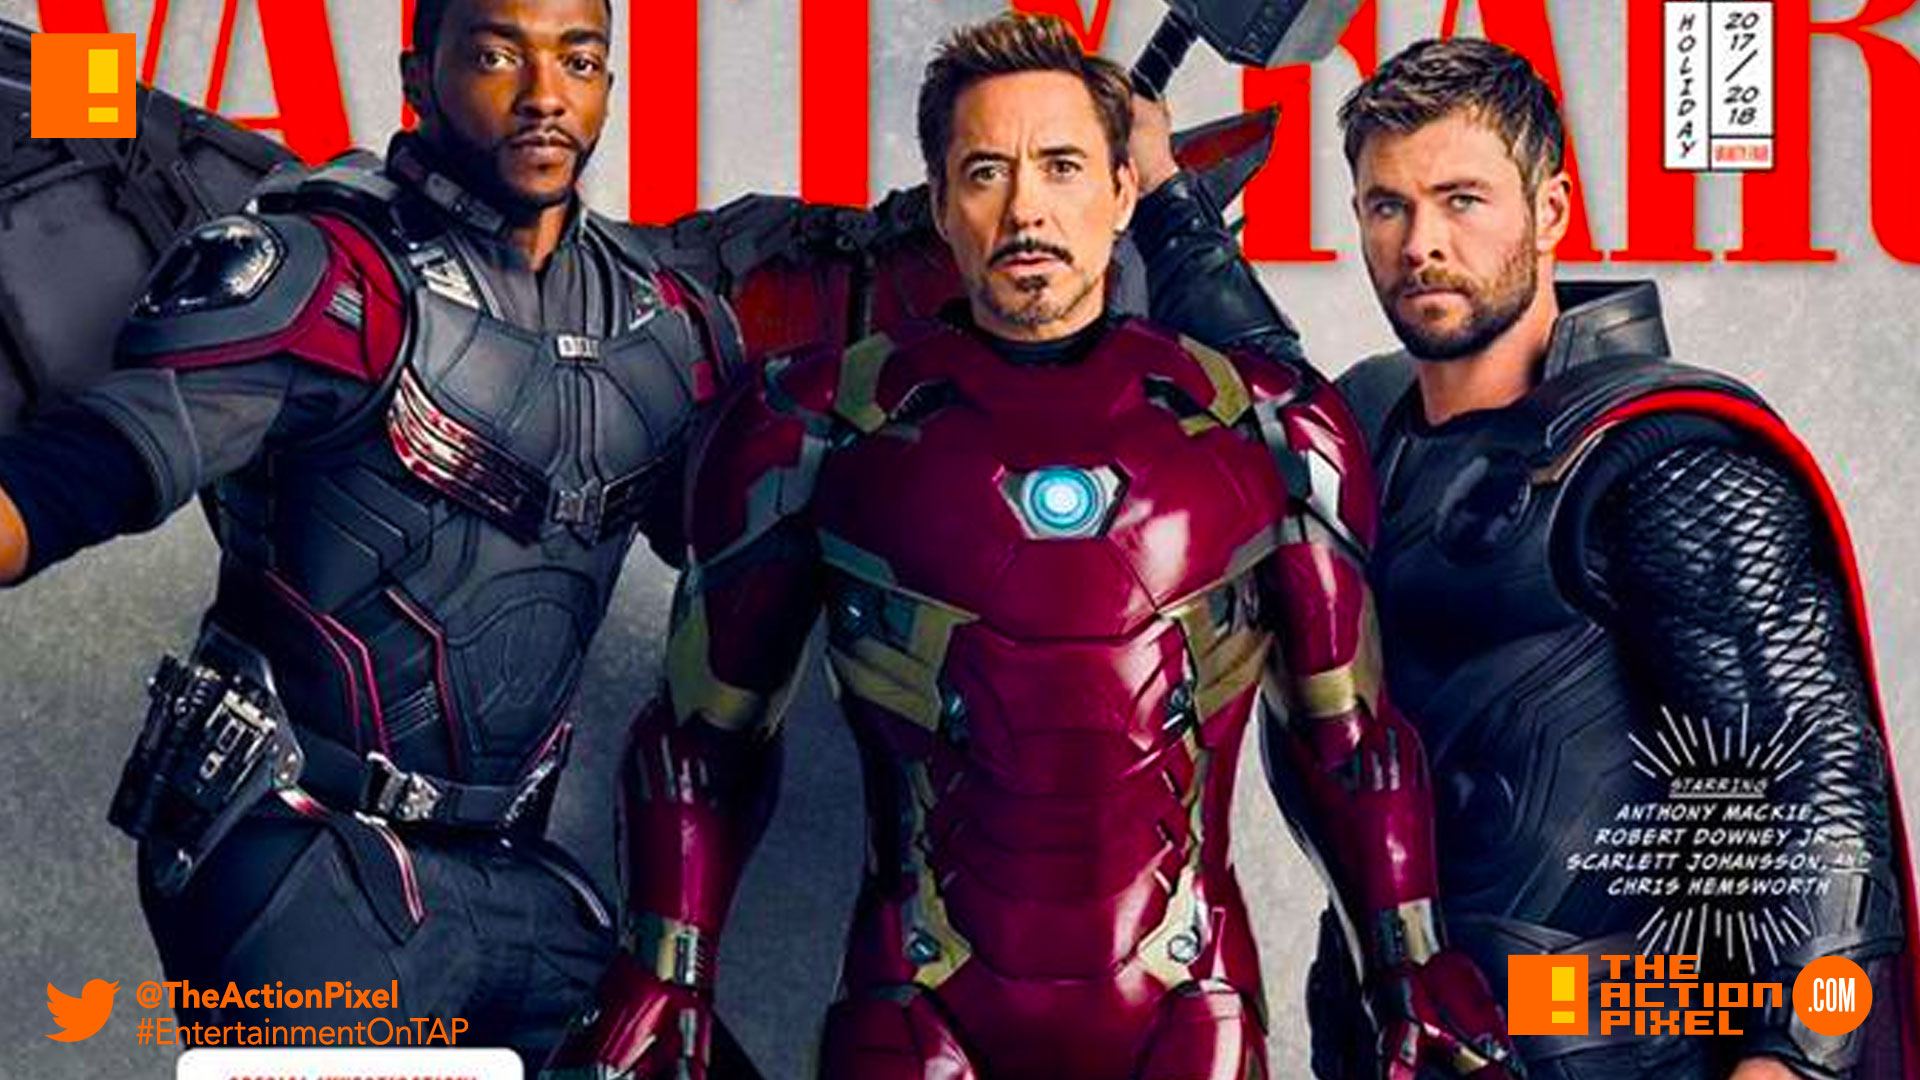 VANITY fair, AVENGERS, avengers: infinity war, infinity war, iron man, thor, iron-man, falcon, peter, guardians of the galaxy, doctor strange, black panther, spider man, spider-man, captain america, ant-man, wasp, hawkeye, war machine,